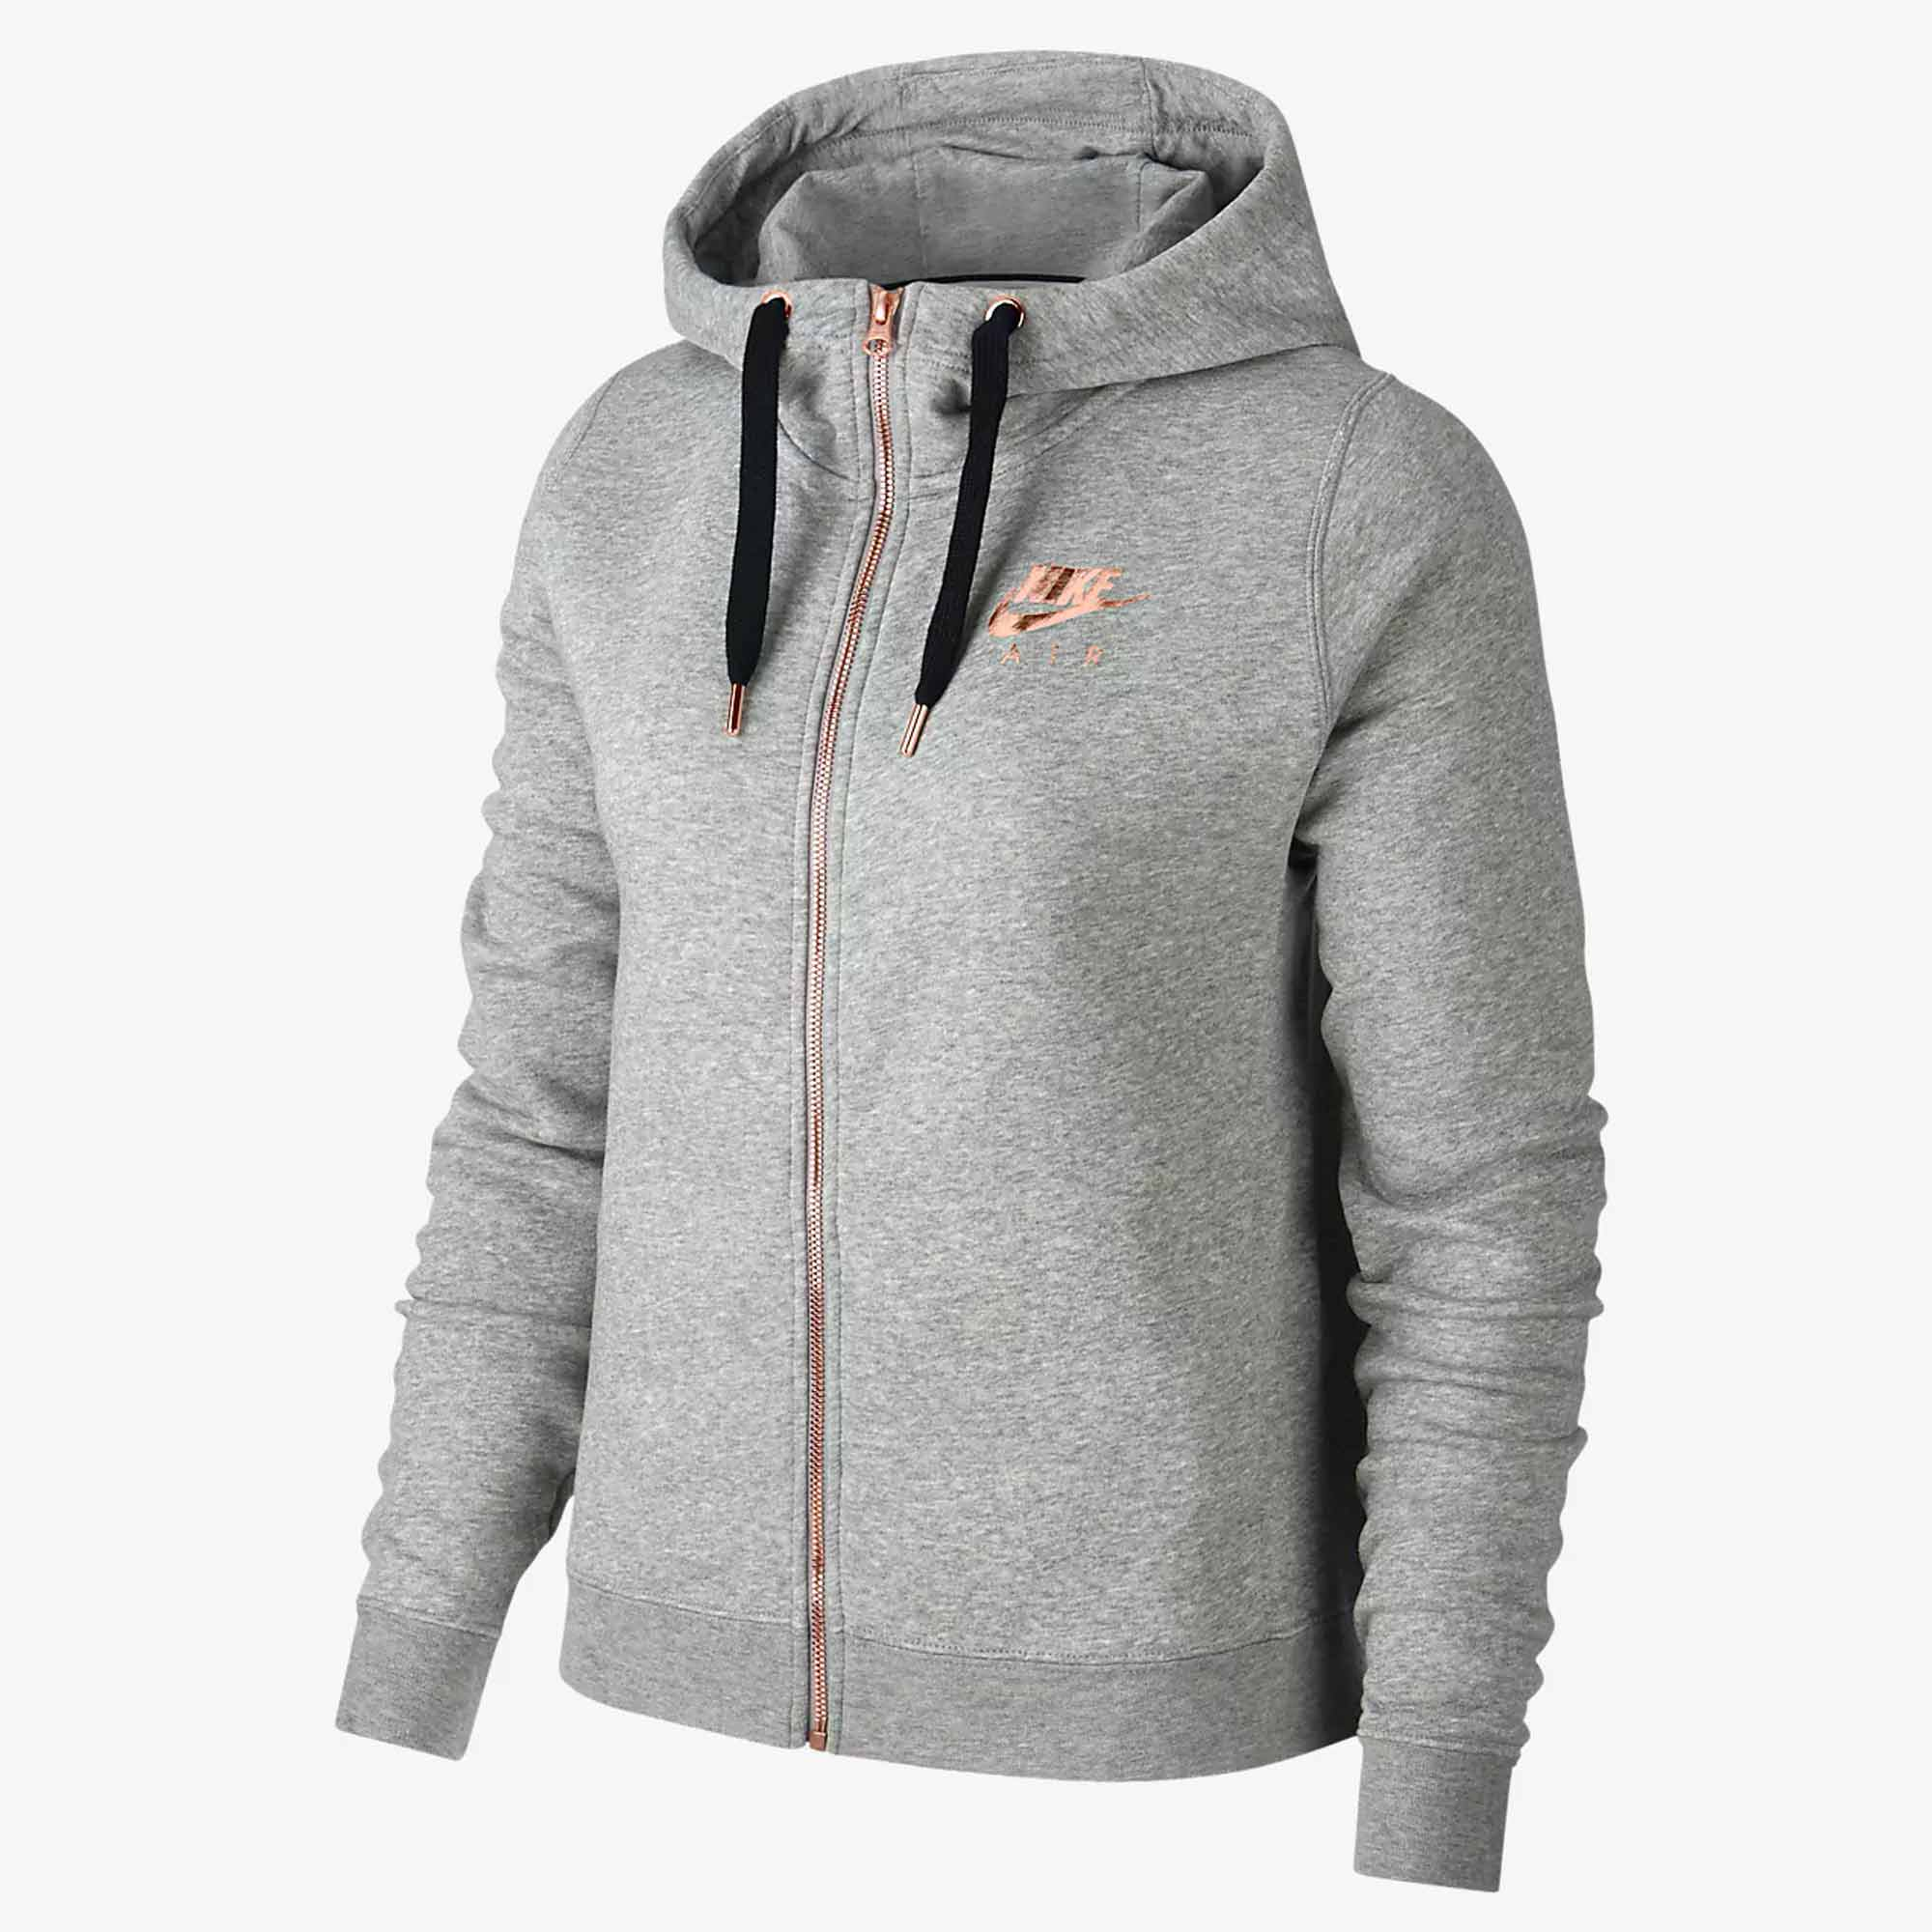 99c46983c41ee Nike W NSW RALLY HOODIE FZ AIR, (AV6229-100-S) - Jeftinije.hr